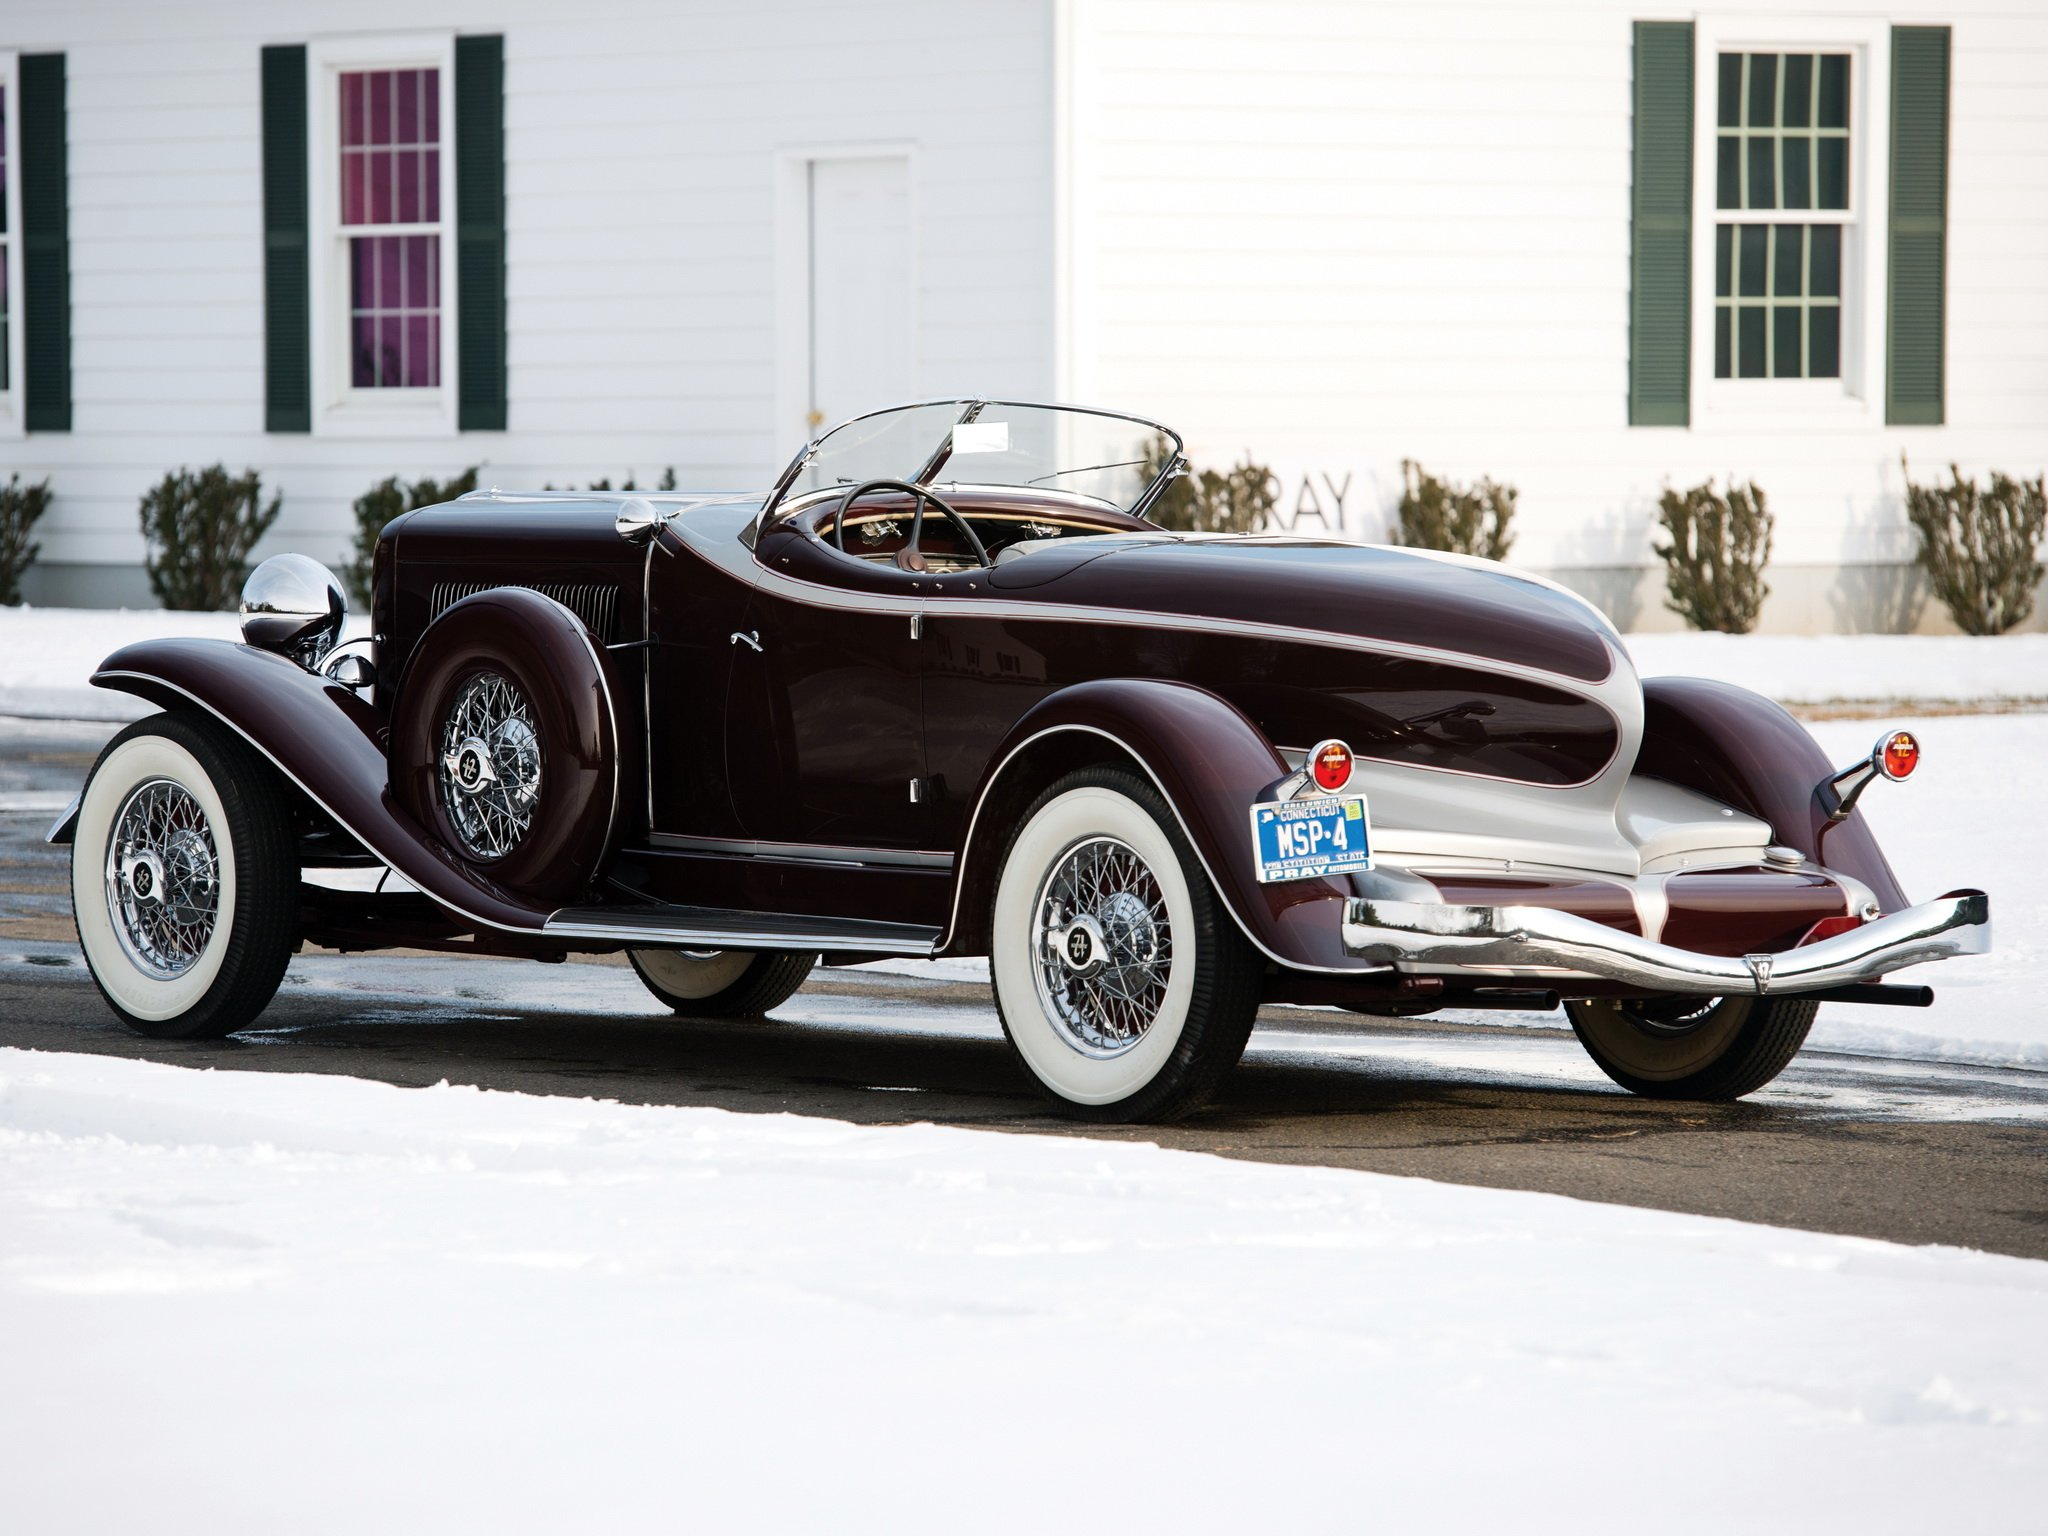 1934 auburn v12 1250 salon dual ratio boattail speedster for 1934 auburn 1250 salon cabriolet